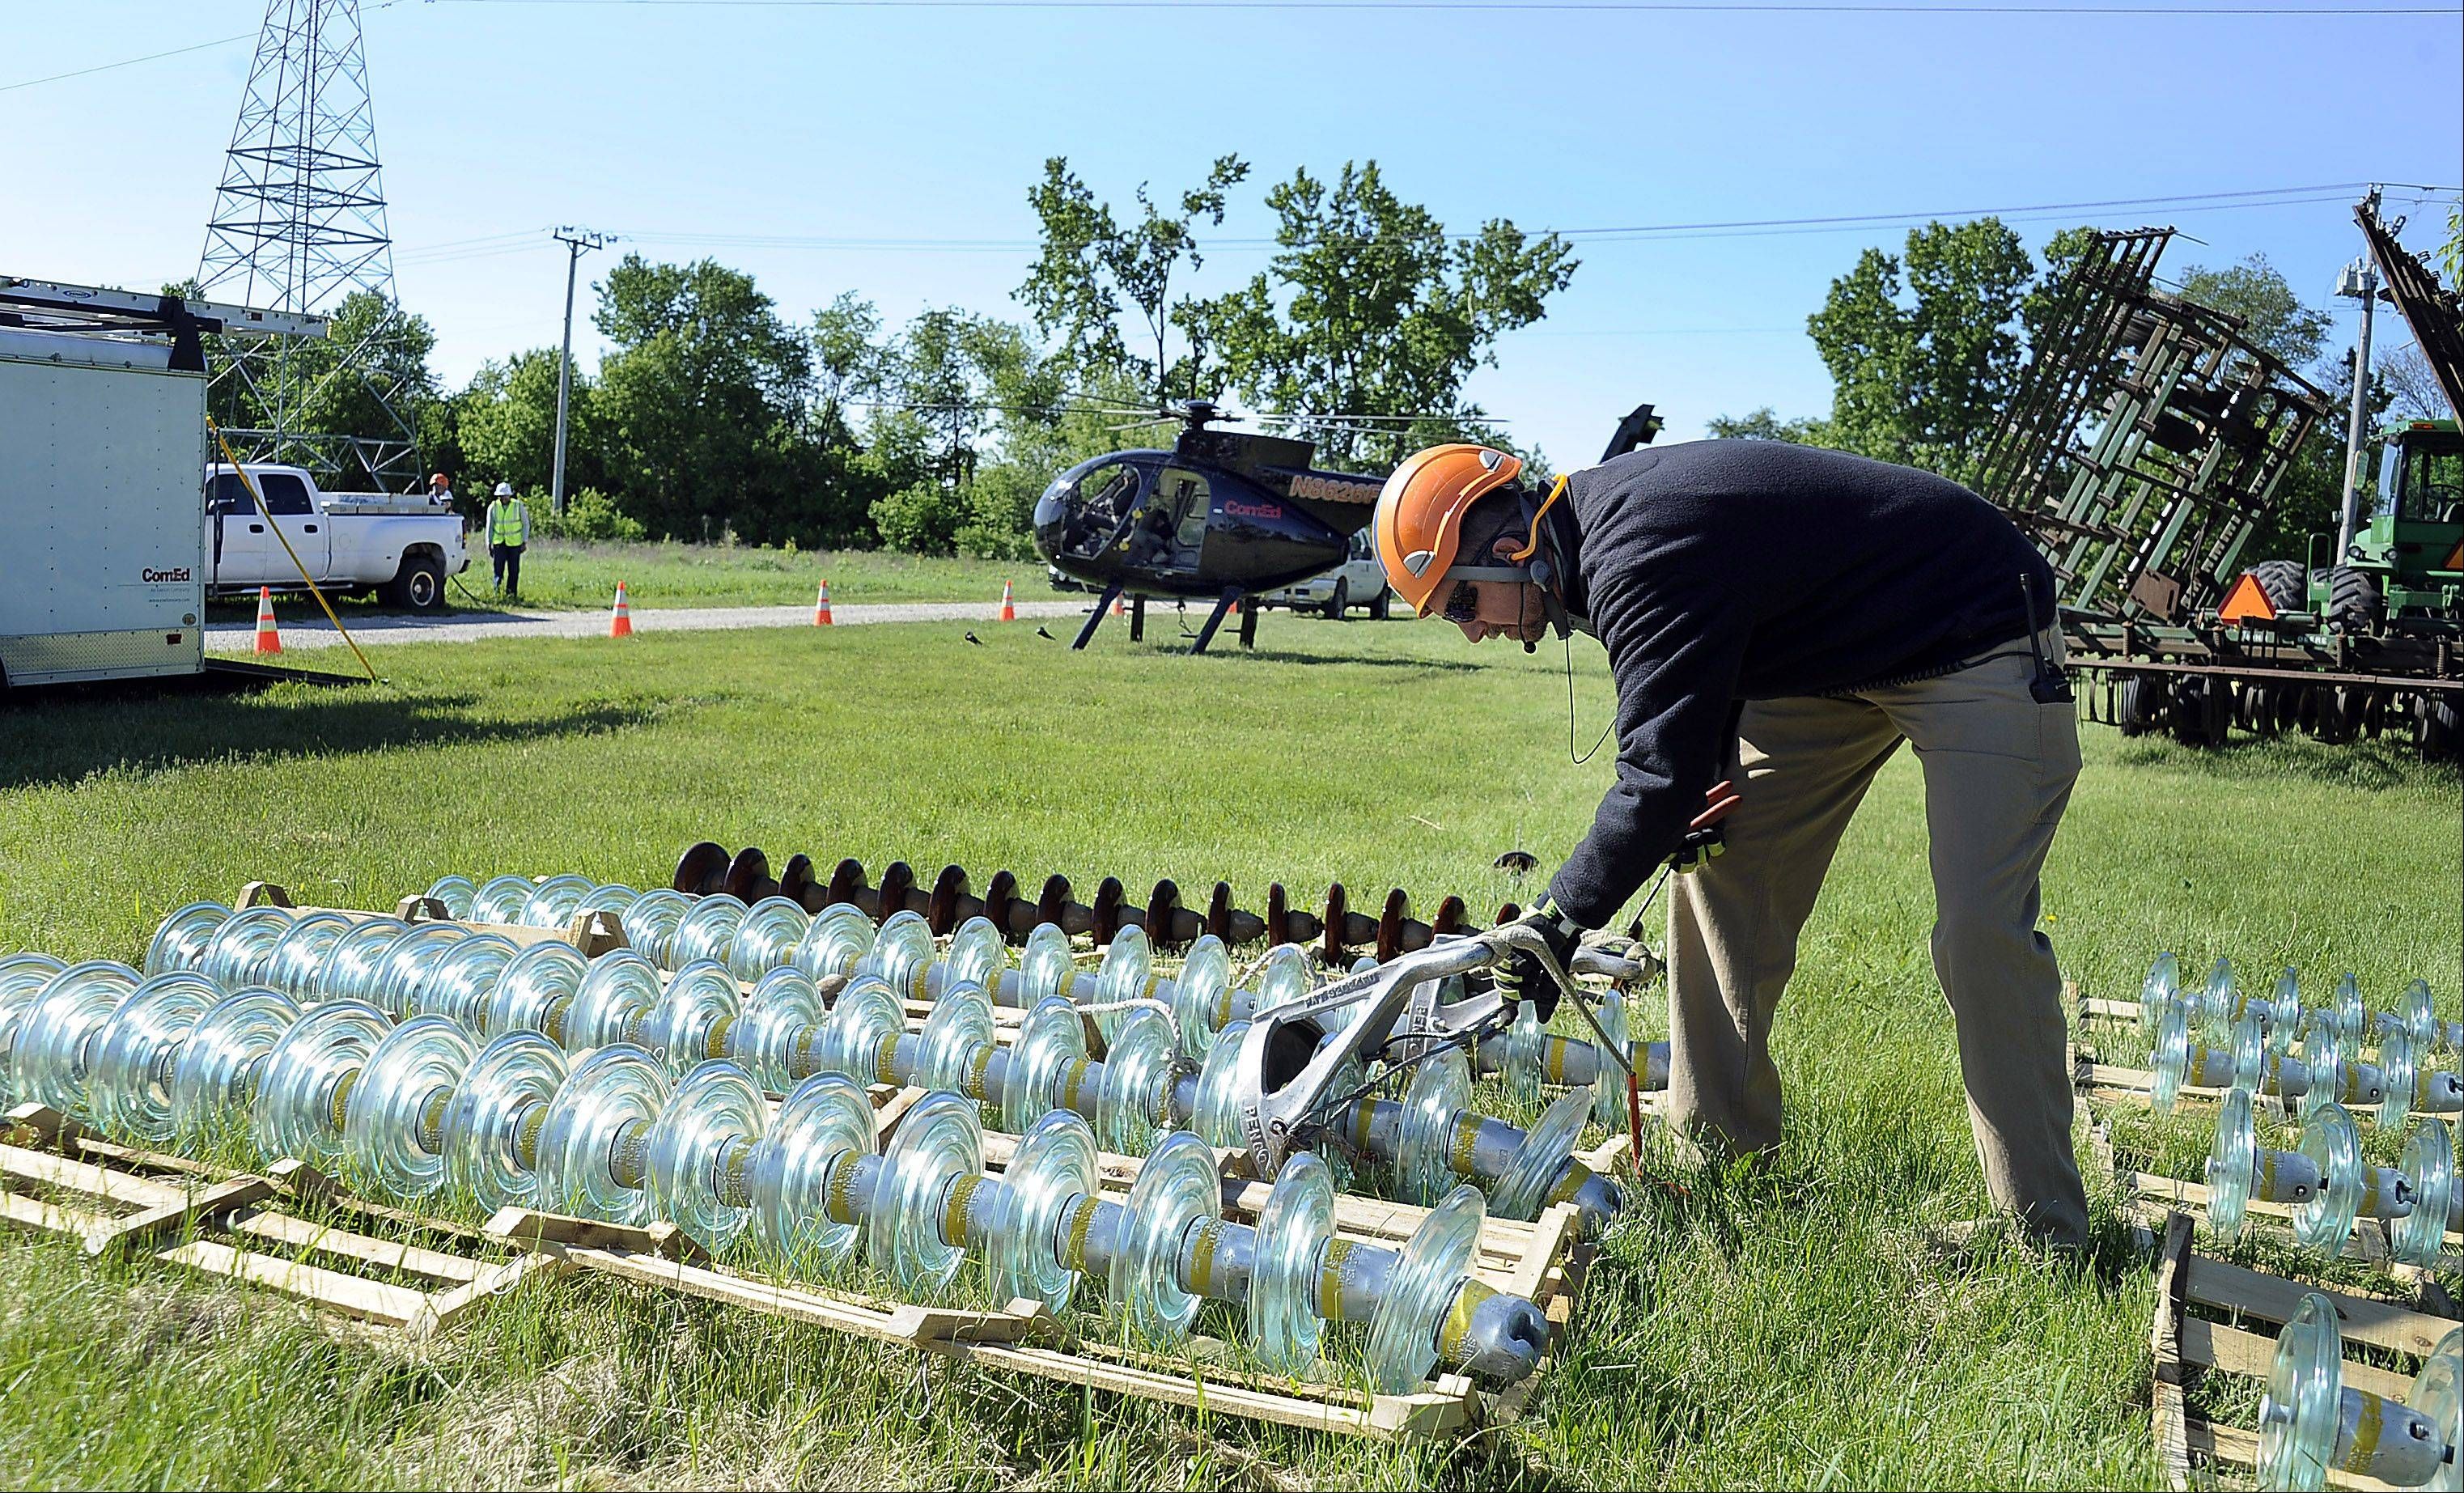 ComEd overhead electricians Mike McClintock of Plainfield hooks up a string of glass insulators which will be deliver via helicopter to the electrical tower where overhead electricians are waiting to swap them out improving service for ComEd customers.